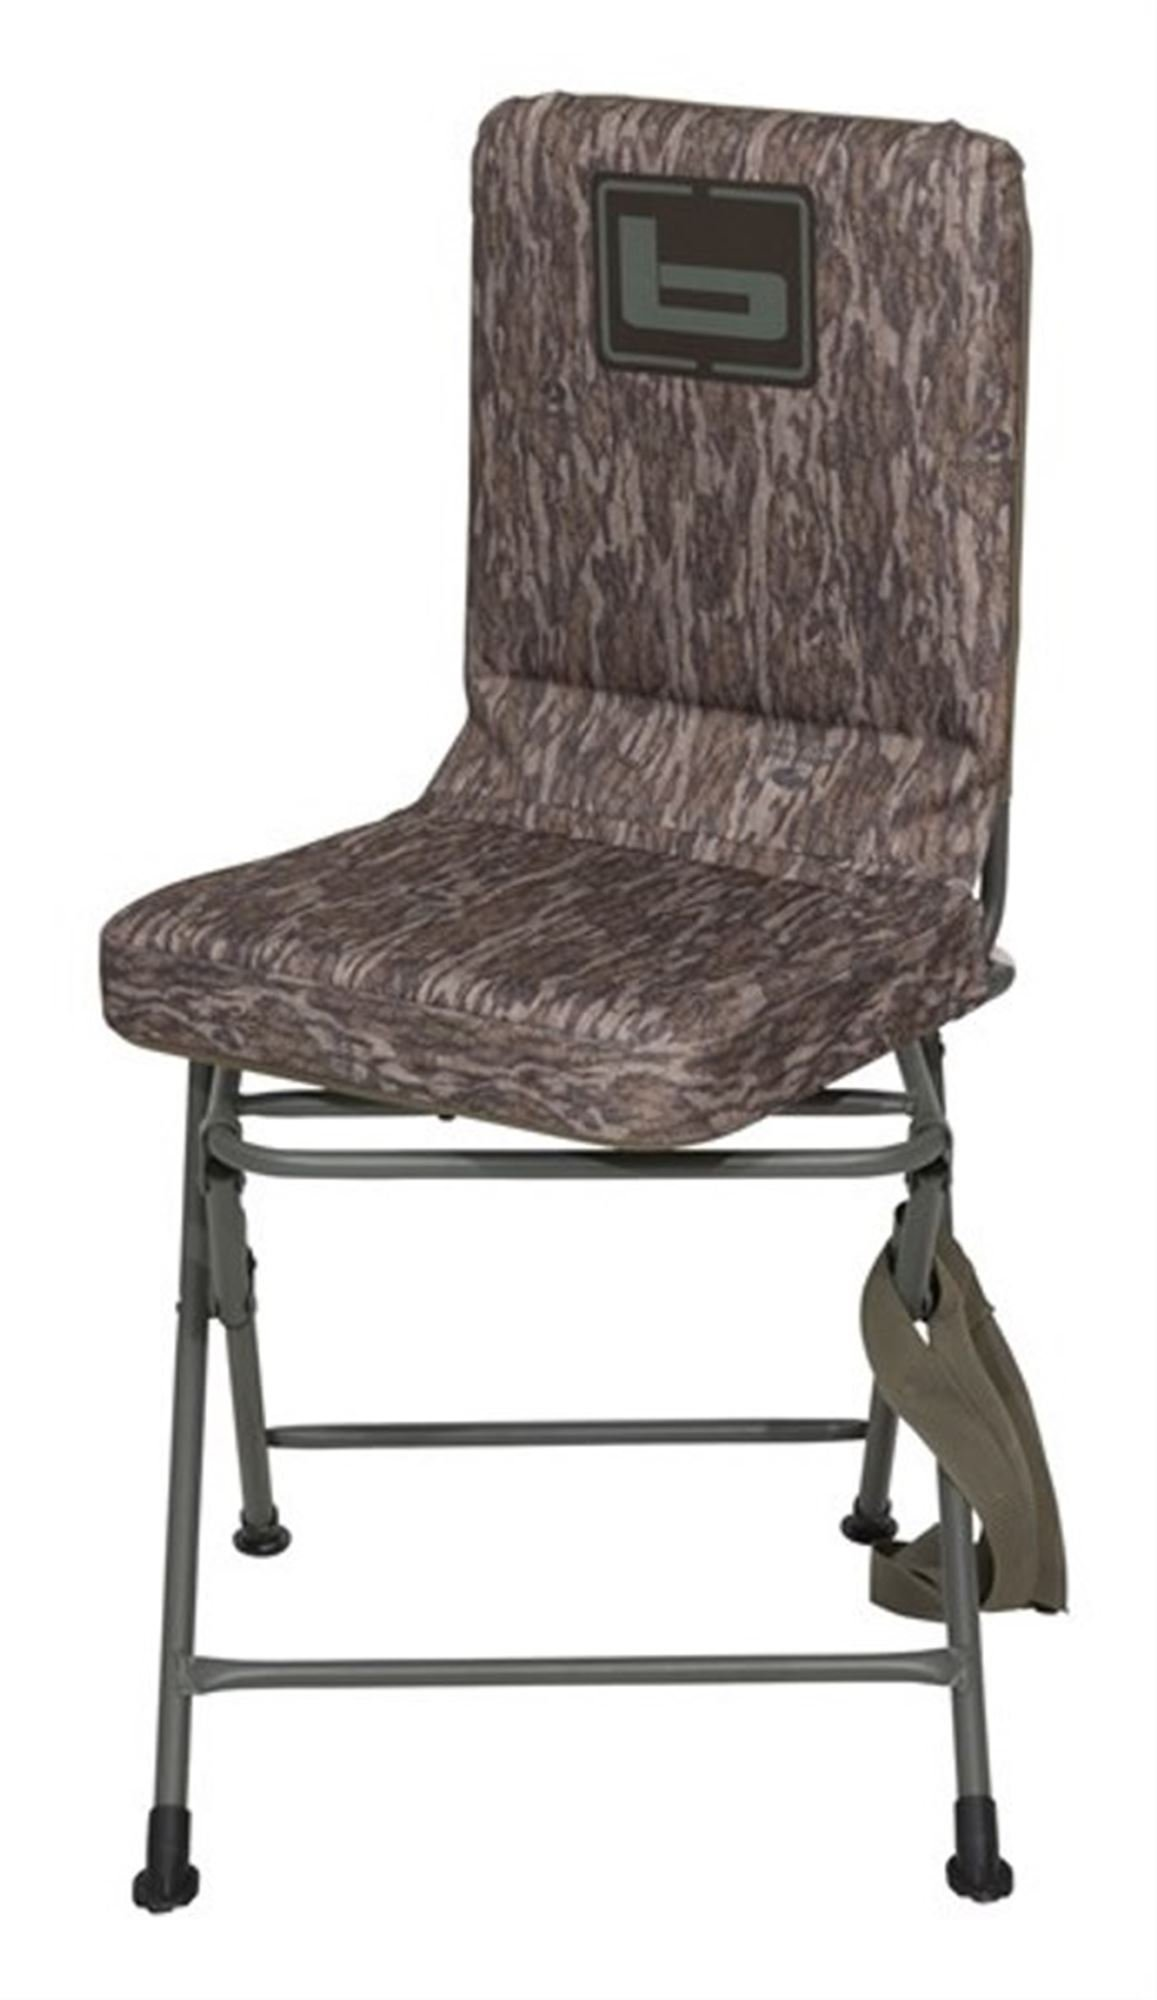 Banded B08709 Swivel Blind Chair Tall Bottomland Hunting Gear